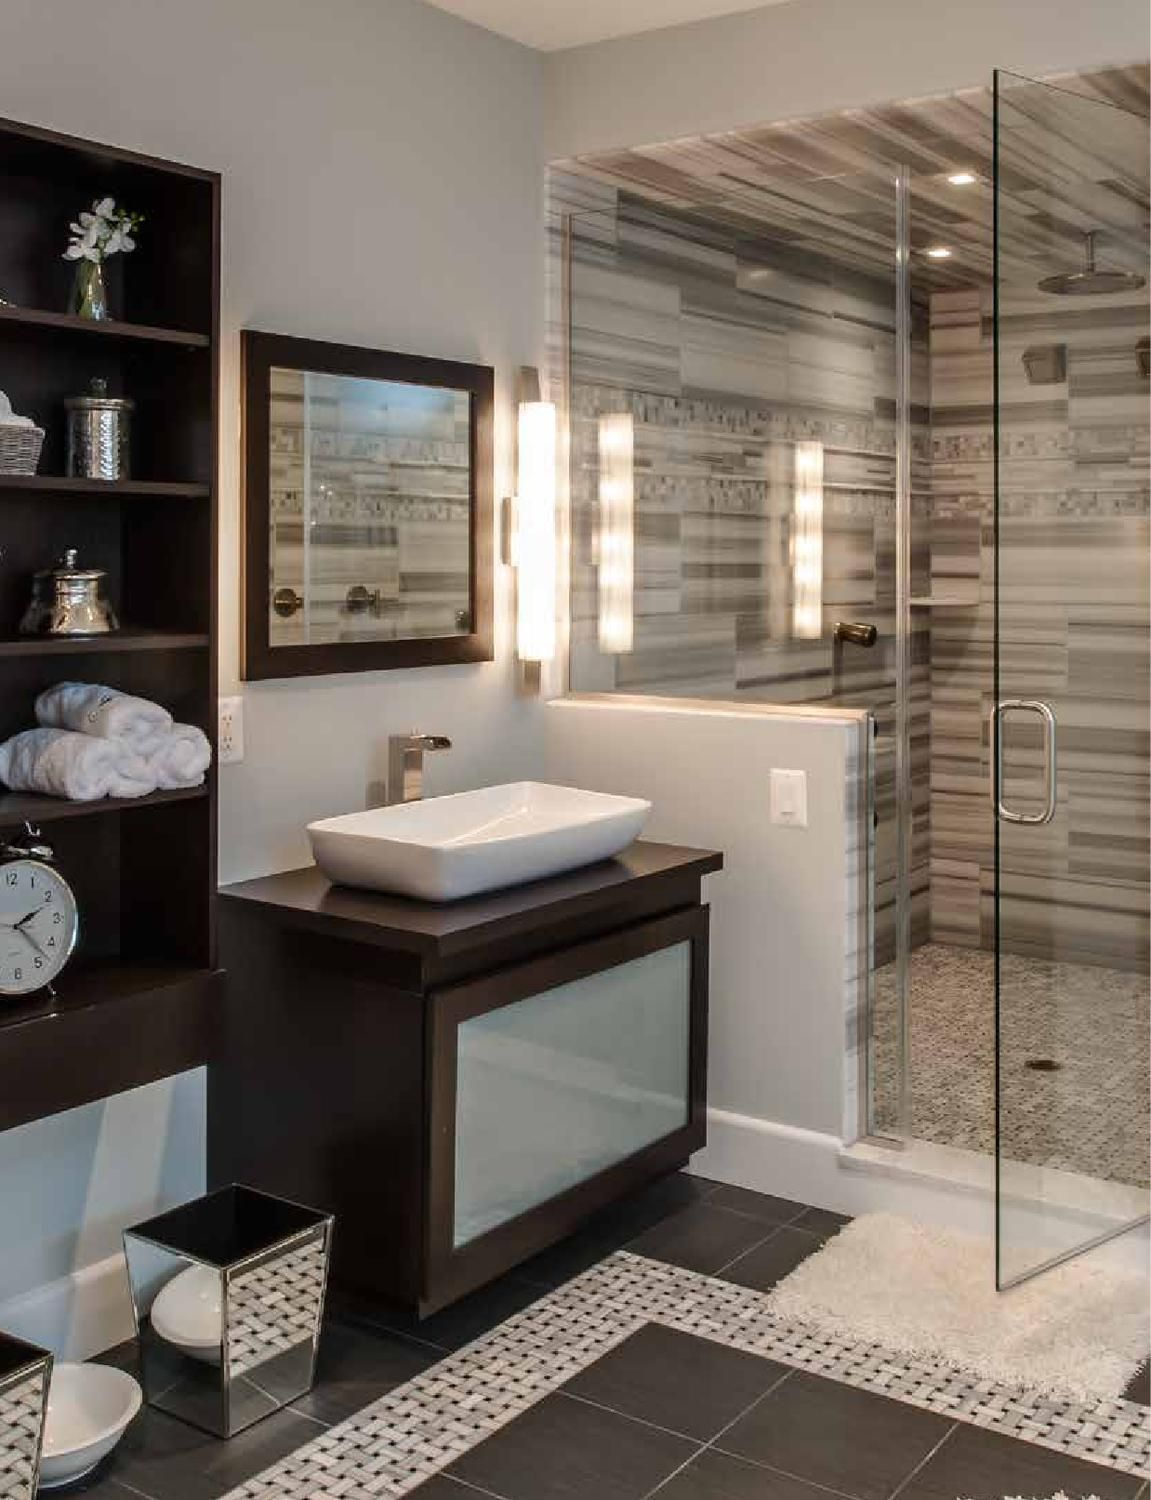 The Latest Bathroom Trends For 2016: Annapolis Home January 2013